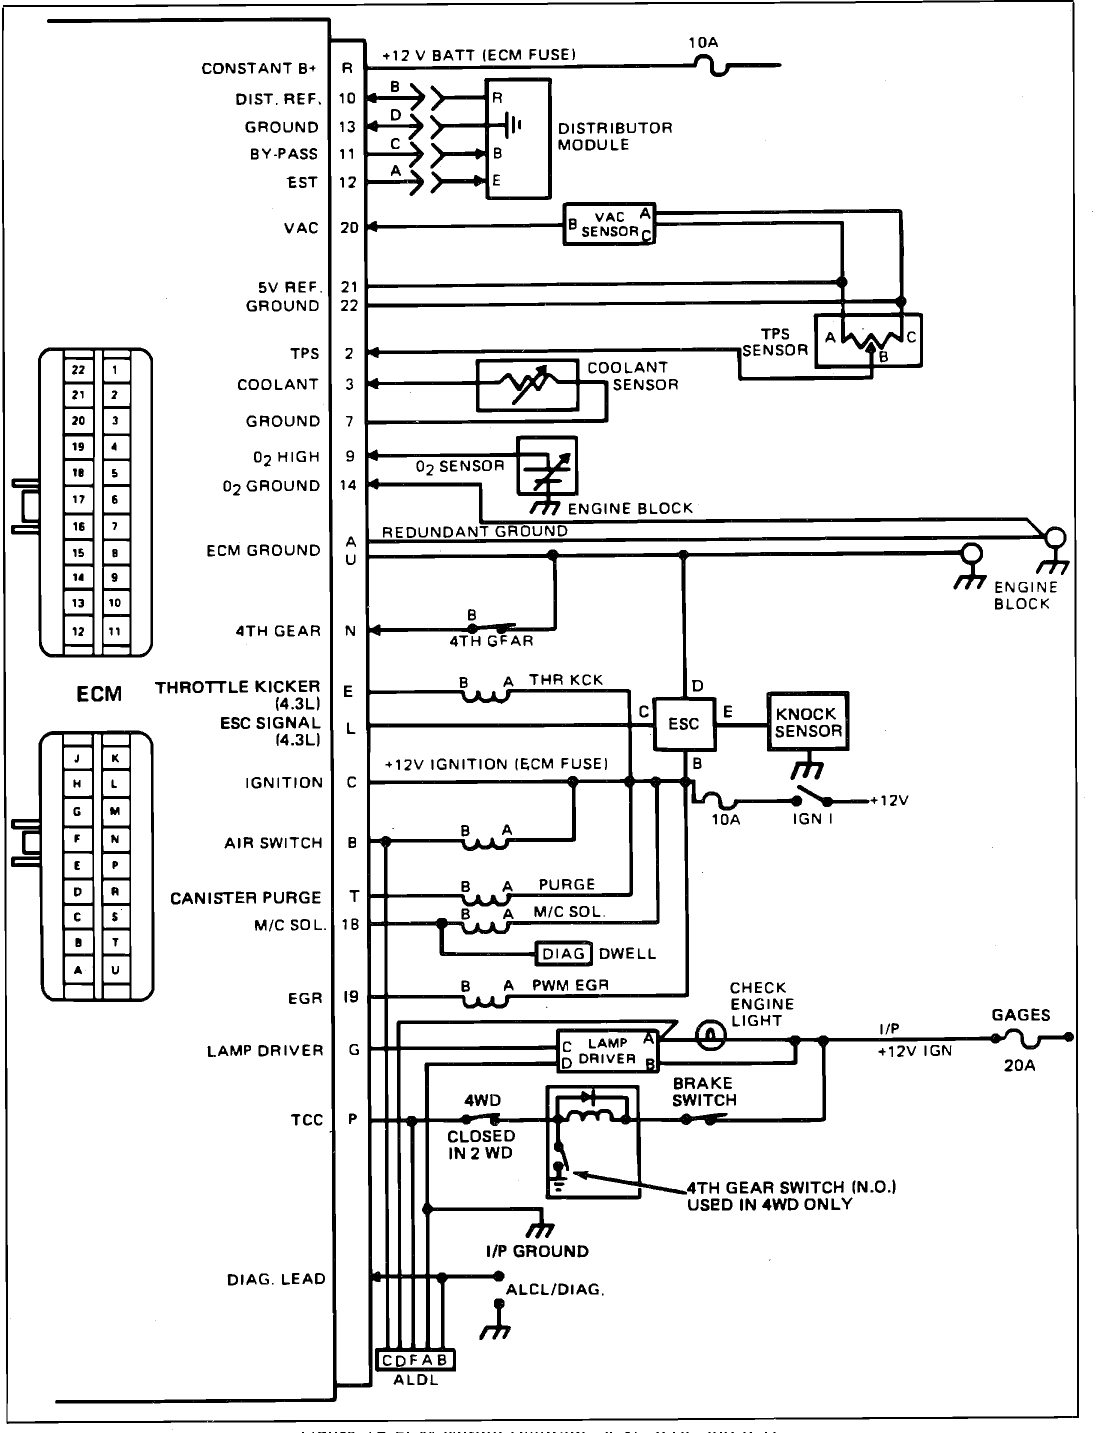 hight resolution of i need a fuse box diagram with wiring colors 93 chevy pickup fuse box diagram fuse